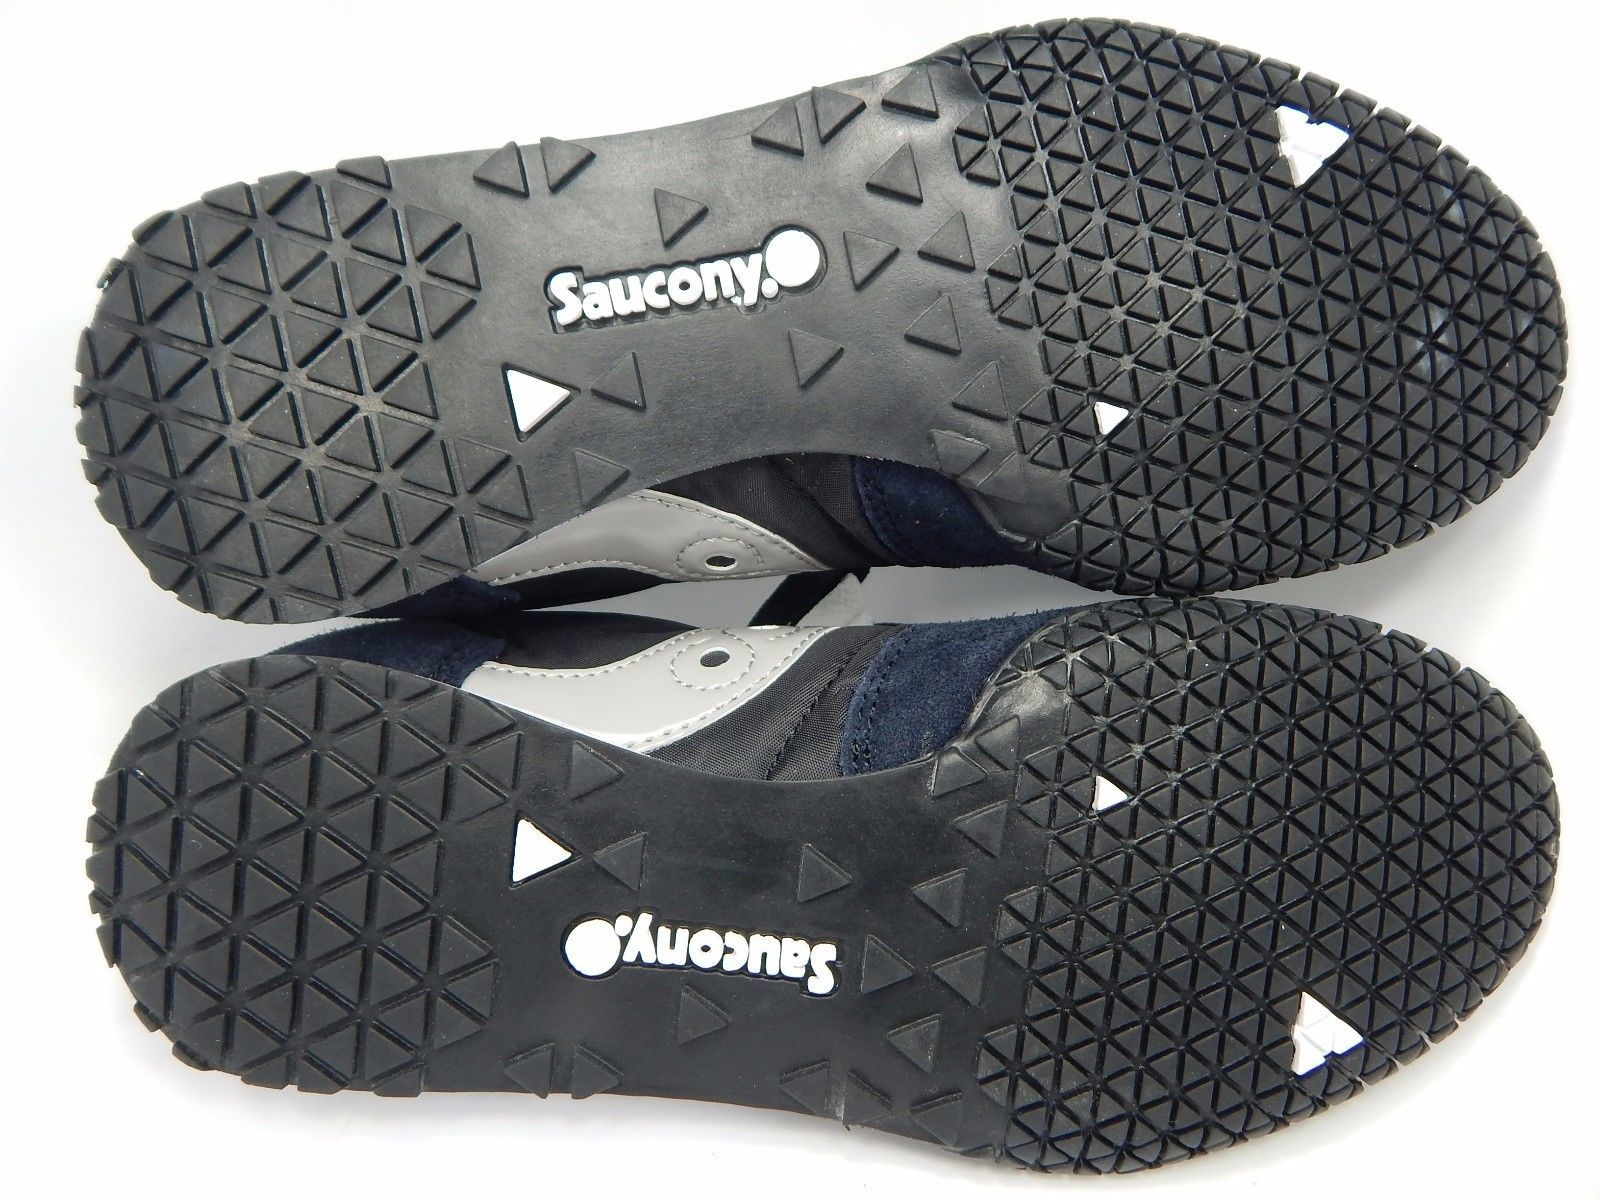 Saucony Original Bullet Women's Running Shoes Size 7 M (B) EU 38 Navy S1943-166